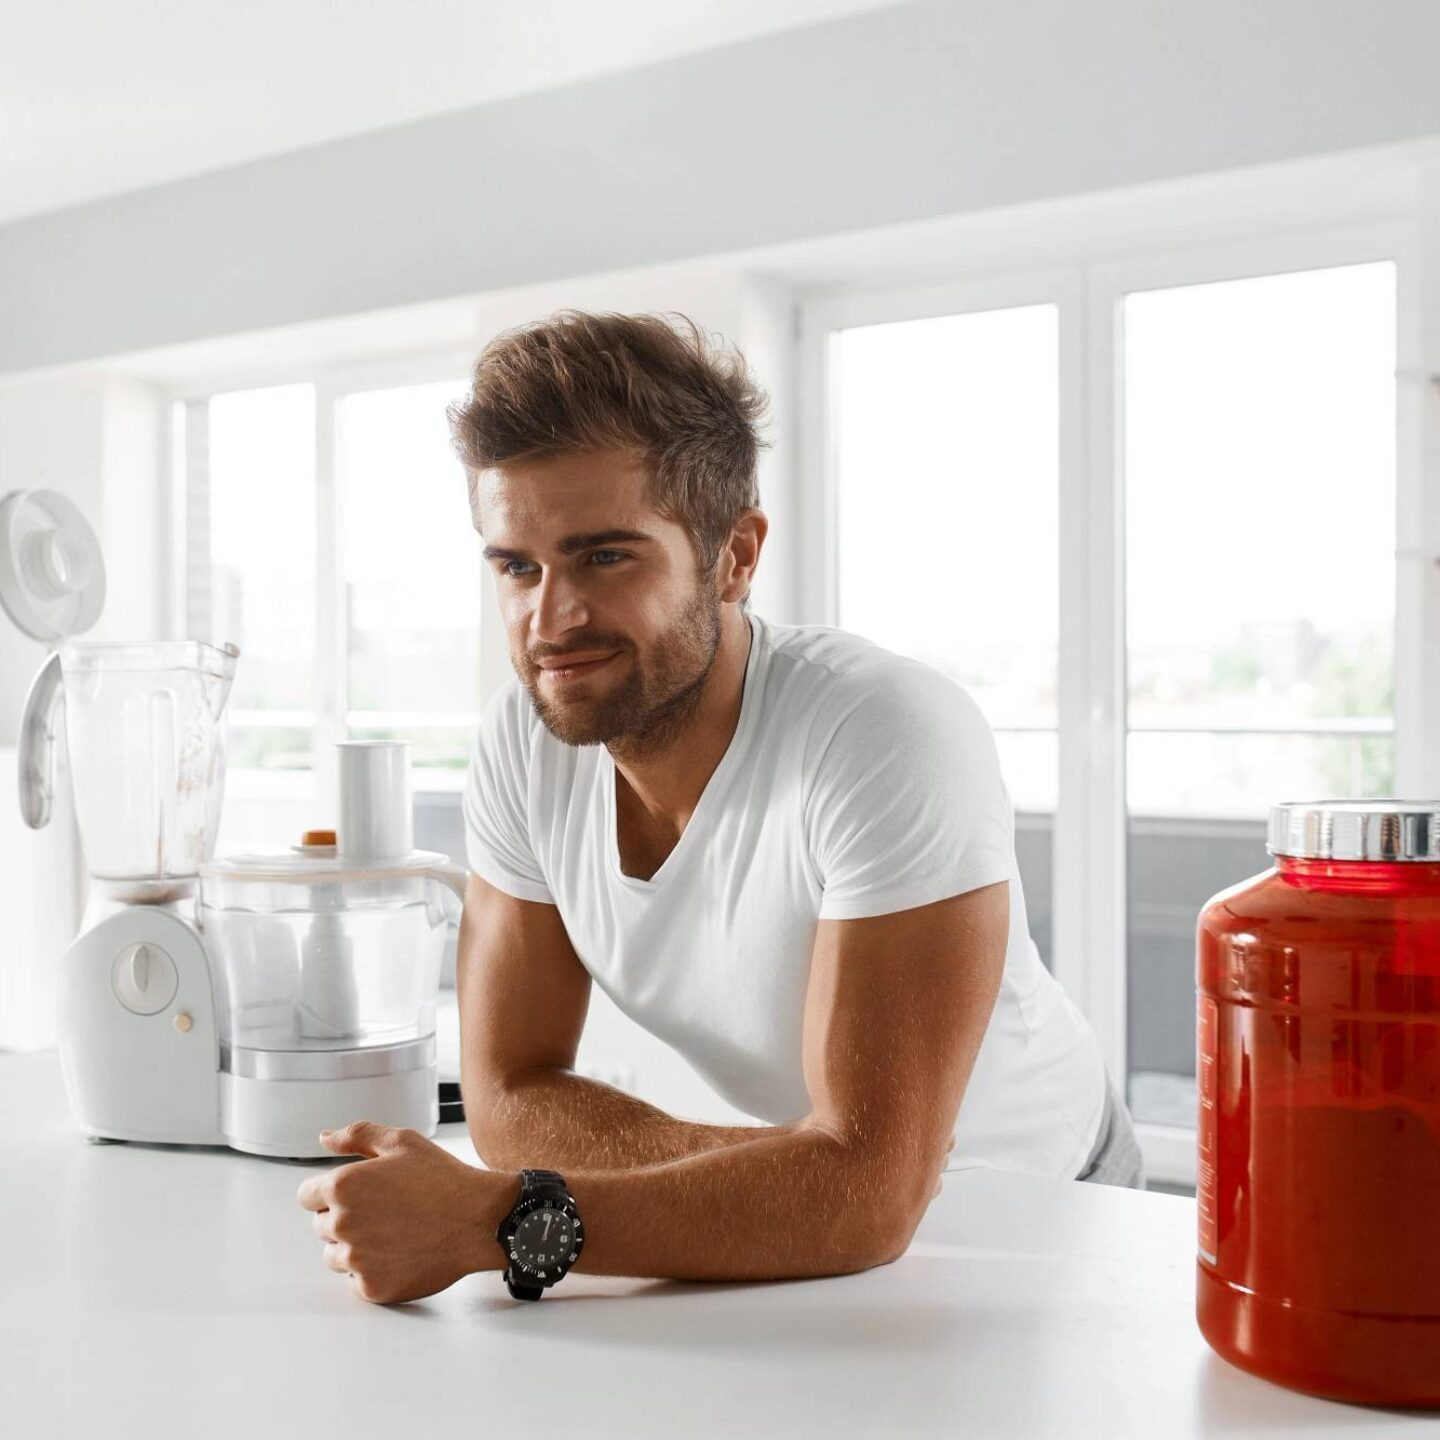 A man with muscular body drinking sports drink - Things to Know about Taking Supplements Safely | NSF International